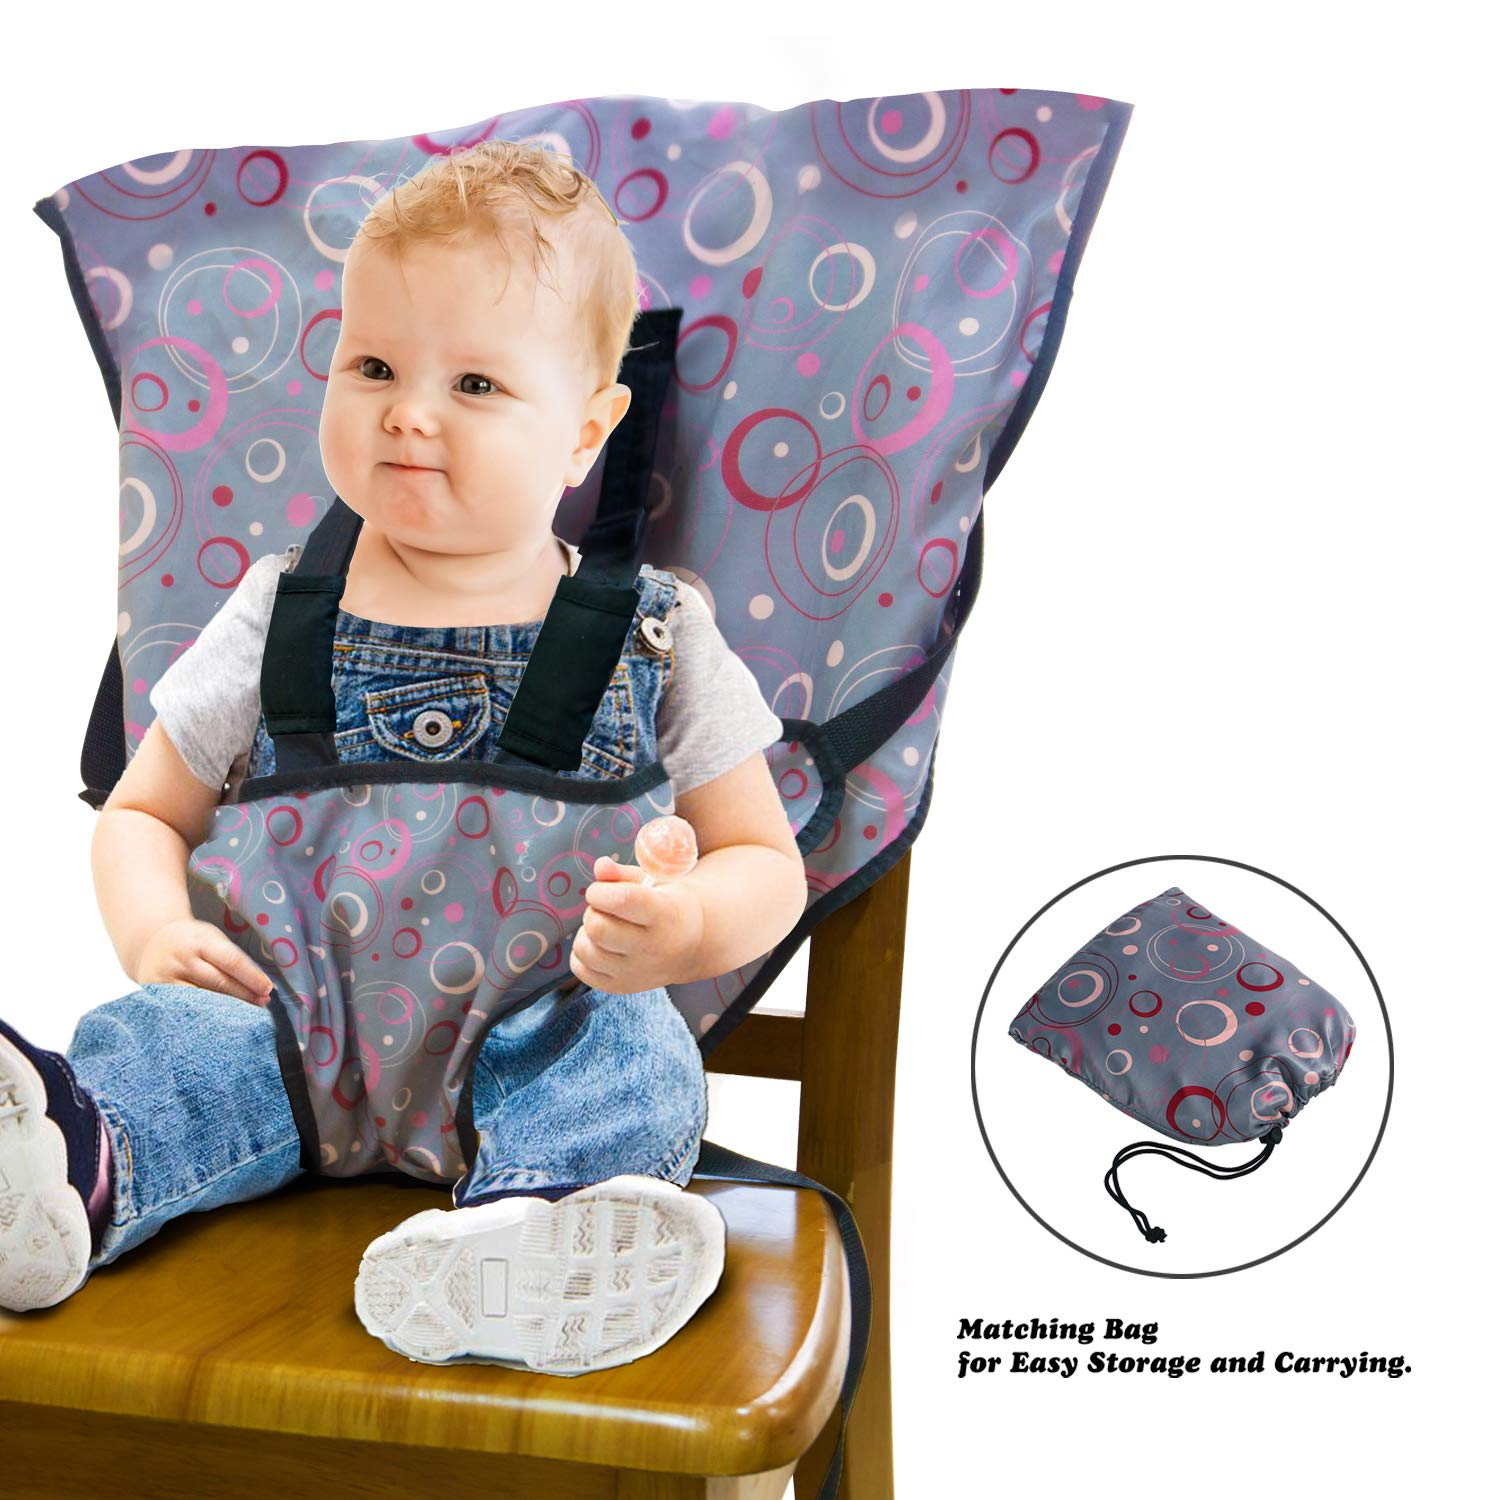 9a022f35b176 Amazon.com   LINPAS Portable Travel Baby High Chair and Feeding Booster  Safety Seat Harness for Infants and Toddlers Washable Cloth (Circles)   Baby